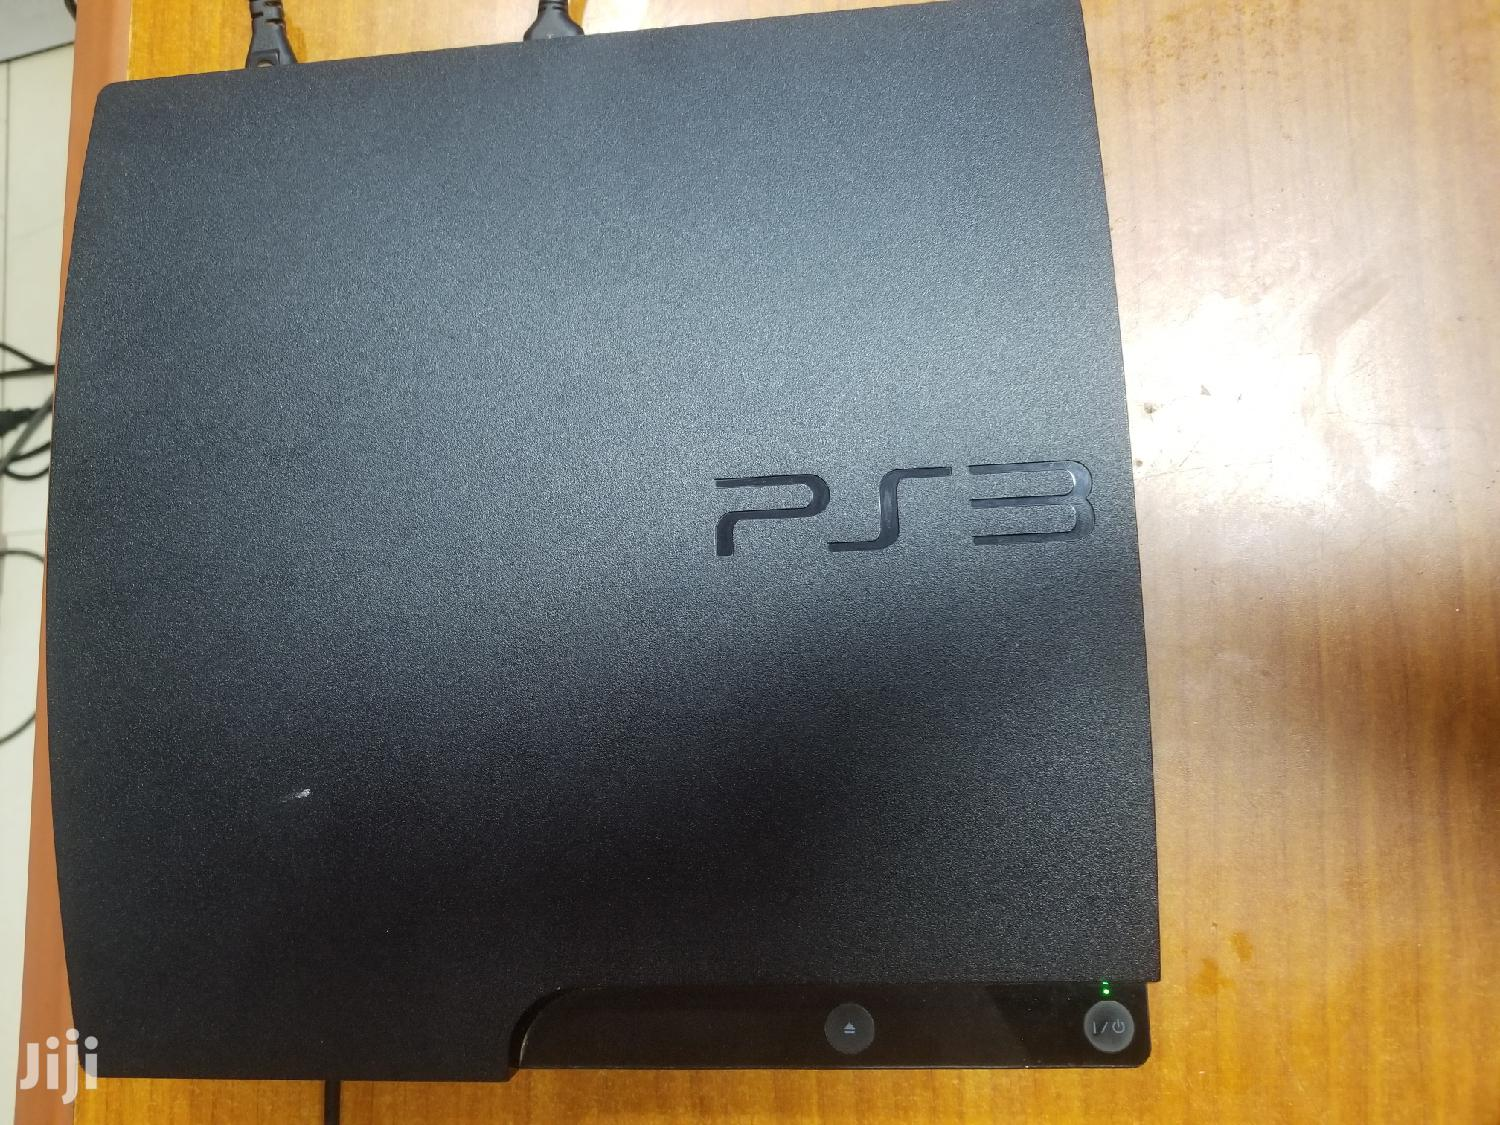 PS3 Slim Chipped   Video Game Consoles for sale in Kampala, Central Region, Uganda